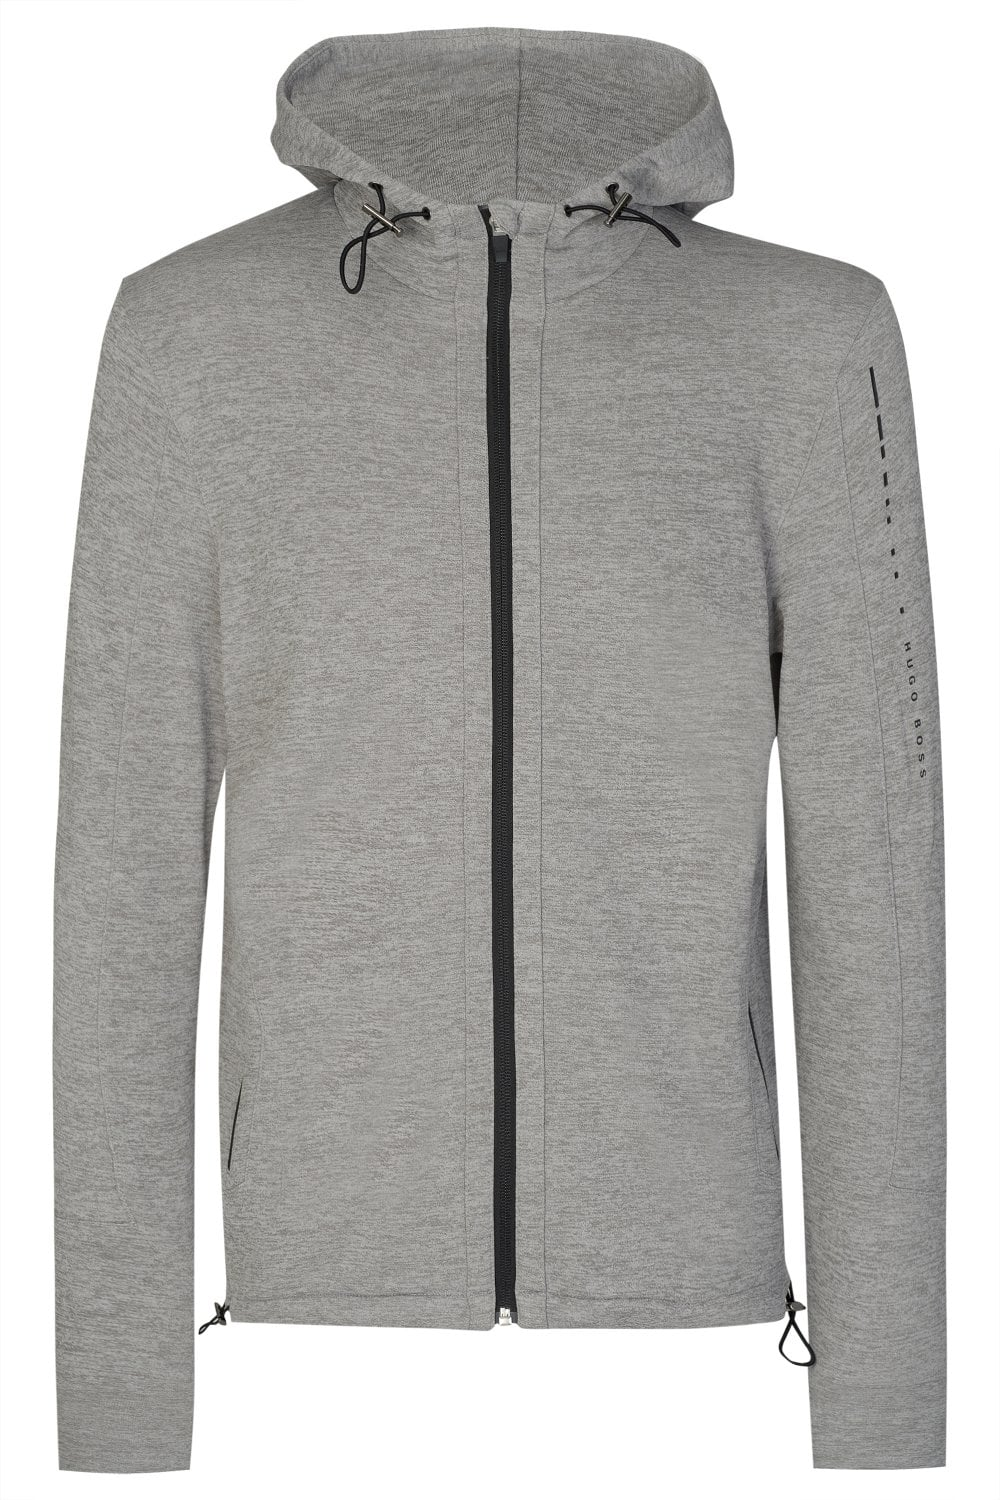 c0a0f96a BOSS Hugo Boss Hooded Top Grey - Clothing from Circle Fashion UK